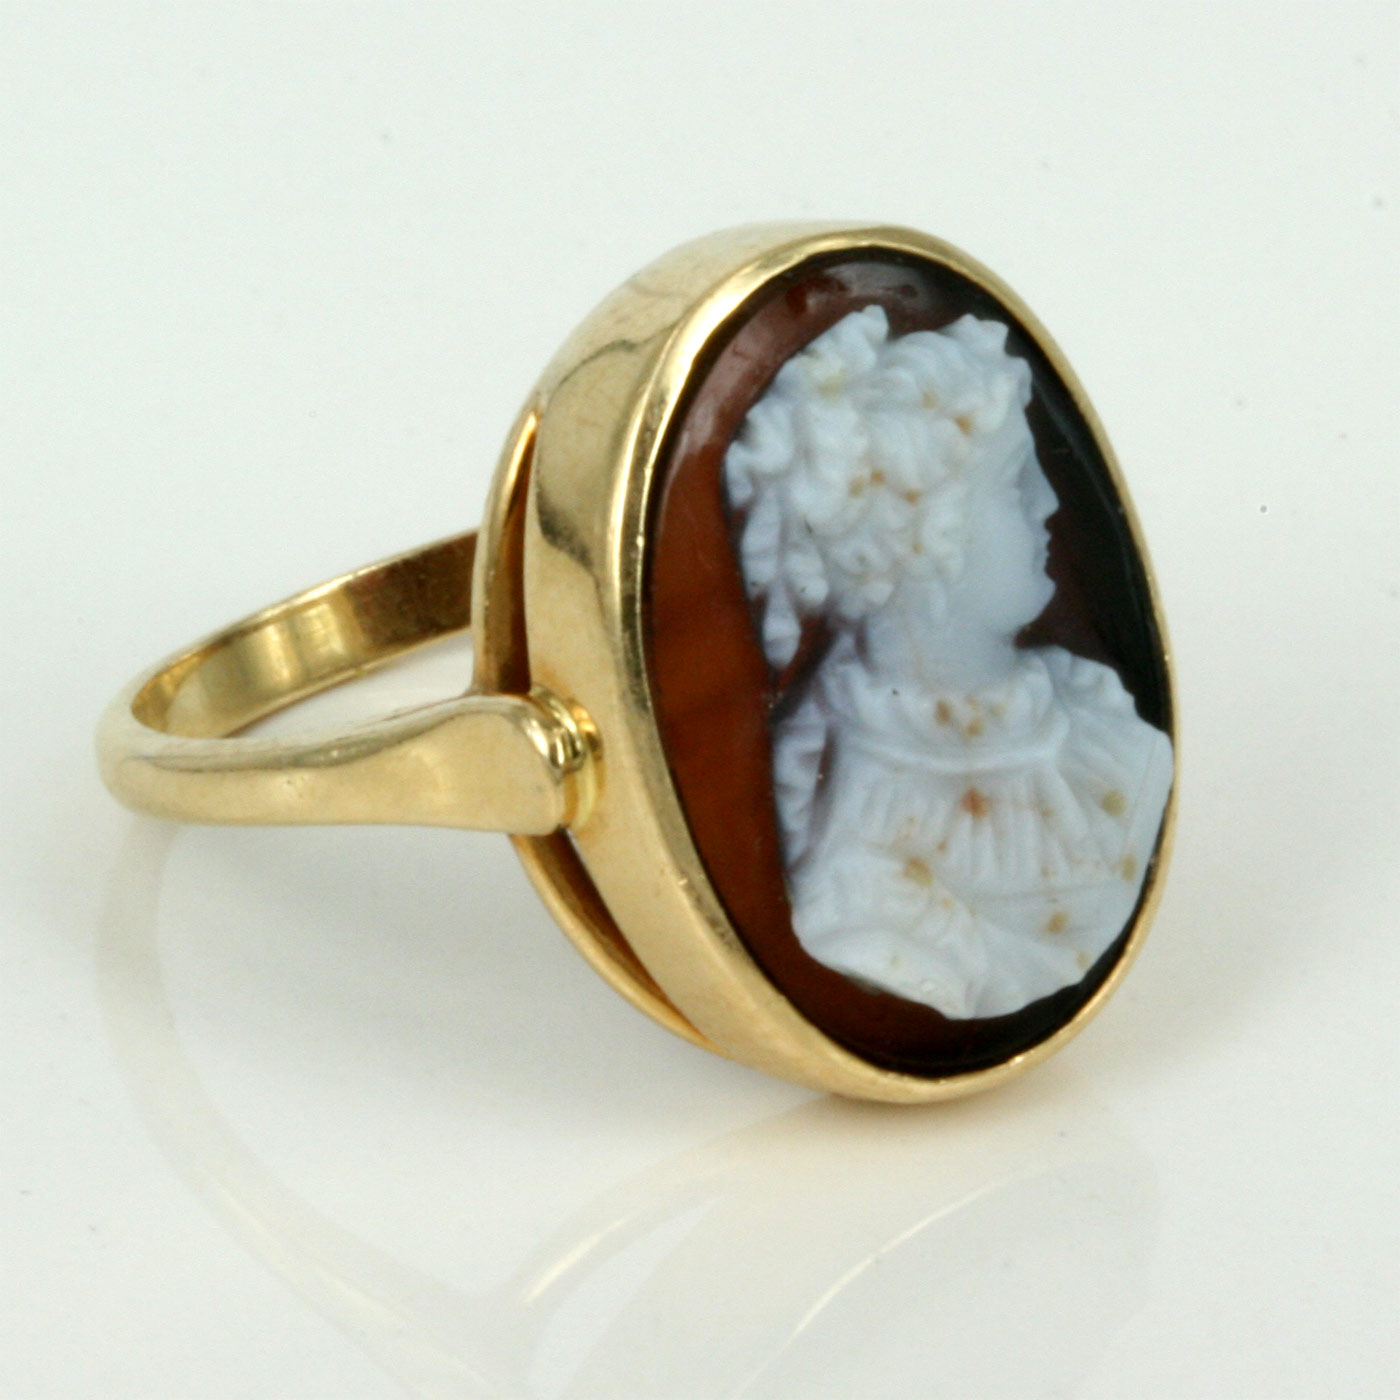 Buy hardstone antique cameo ring from france antique antique cameo hardstone antique cameo ring from france aloadofball Choice Image